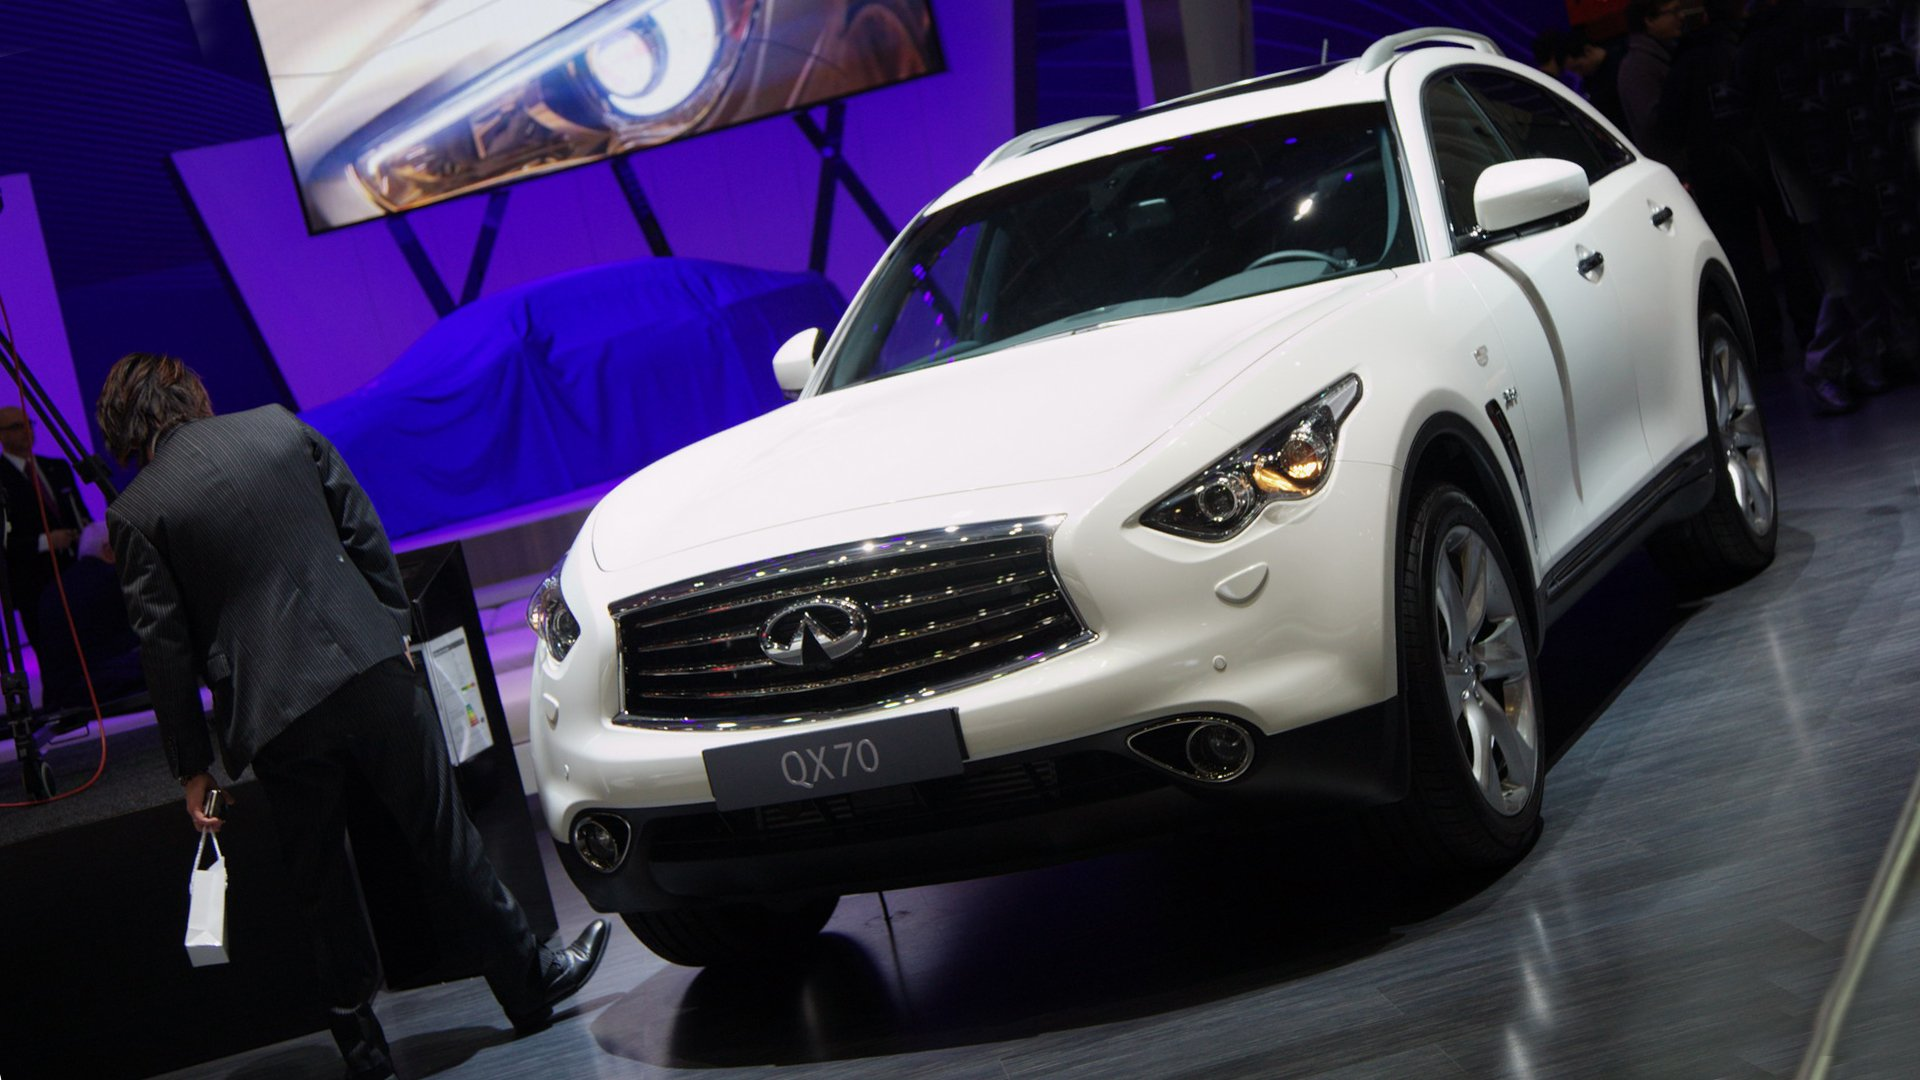 New 2019 Infiniti QX70 Specs Features